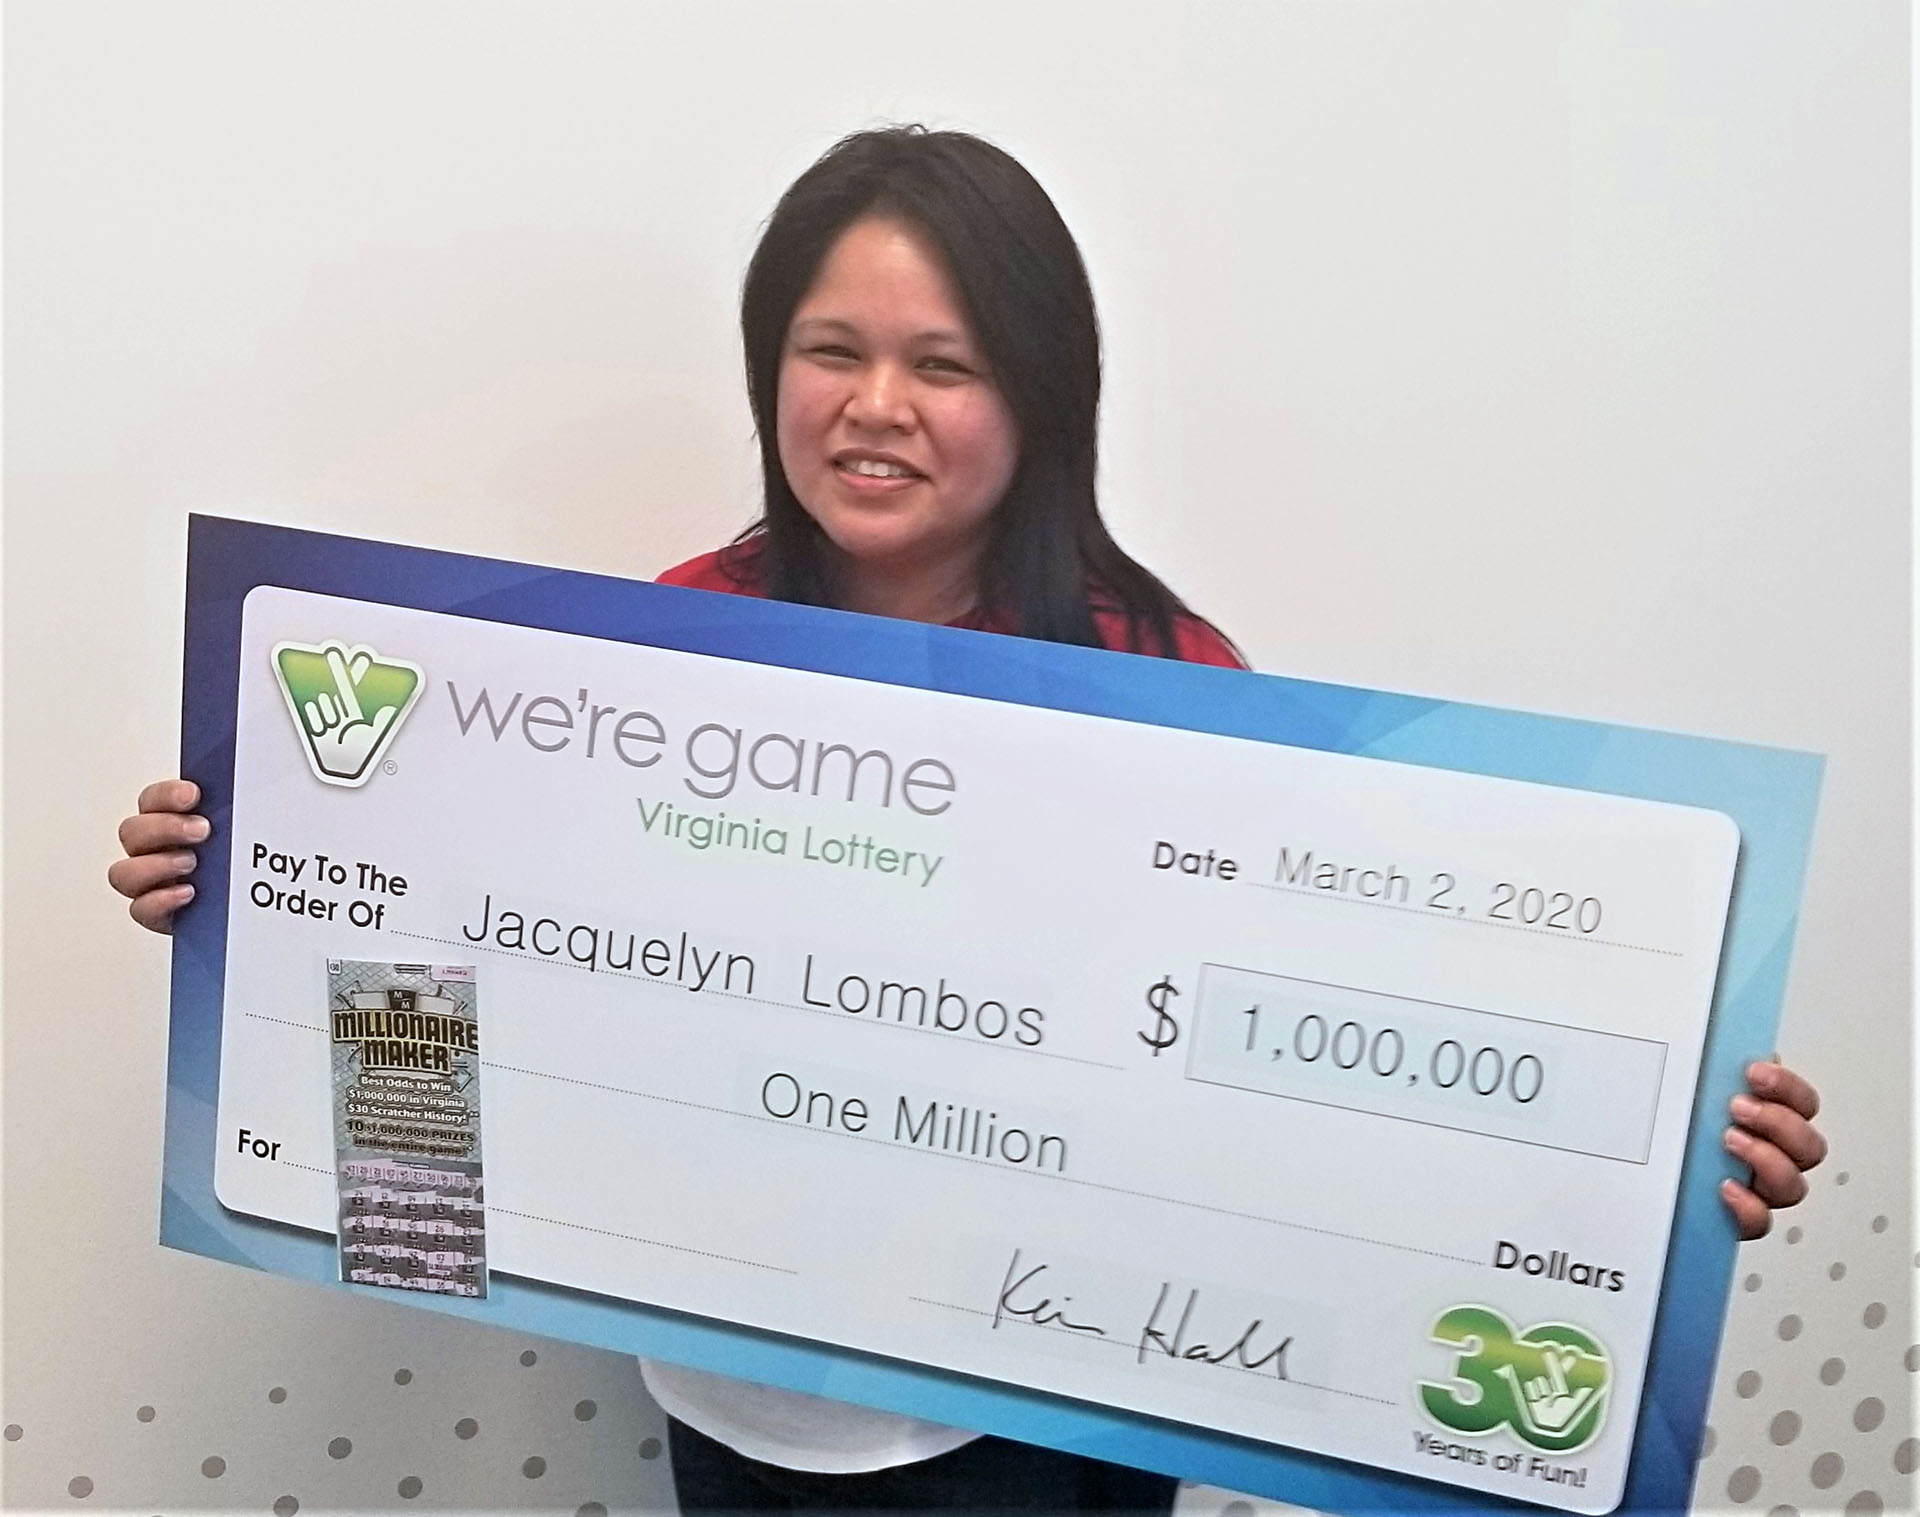 Woodbridge resident wins $1 million from Virginia Lottery